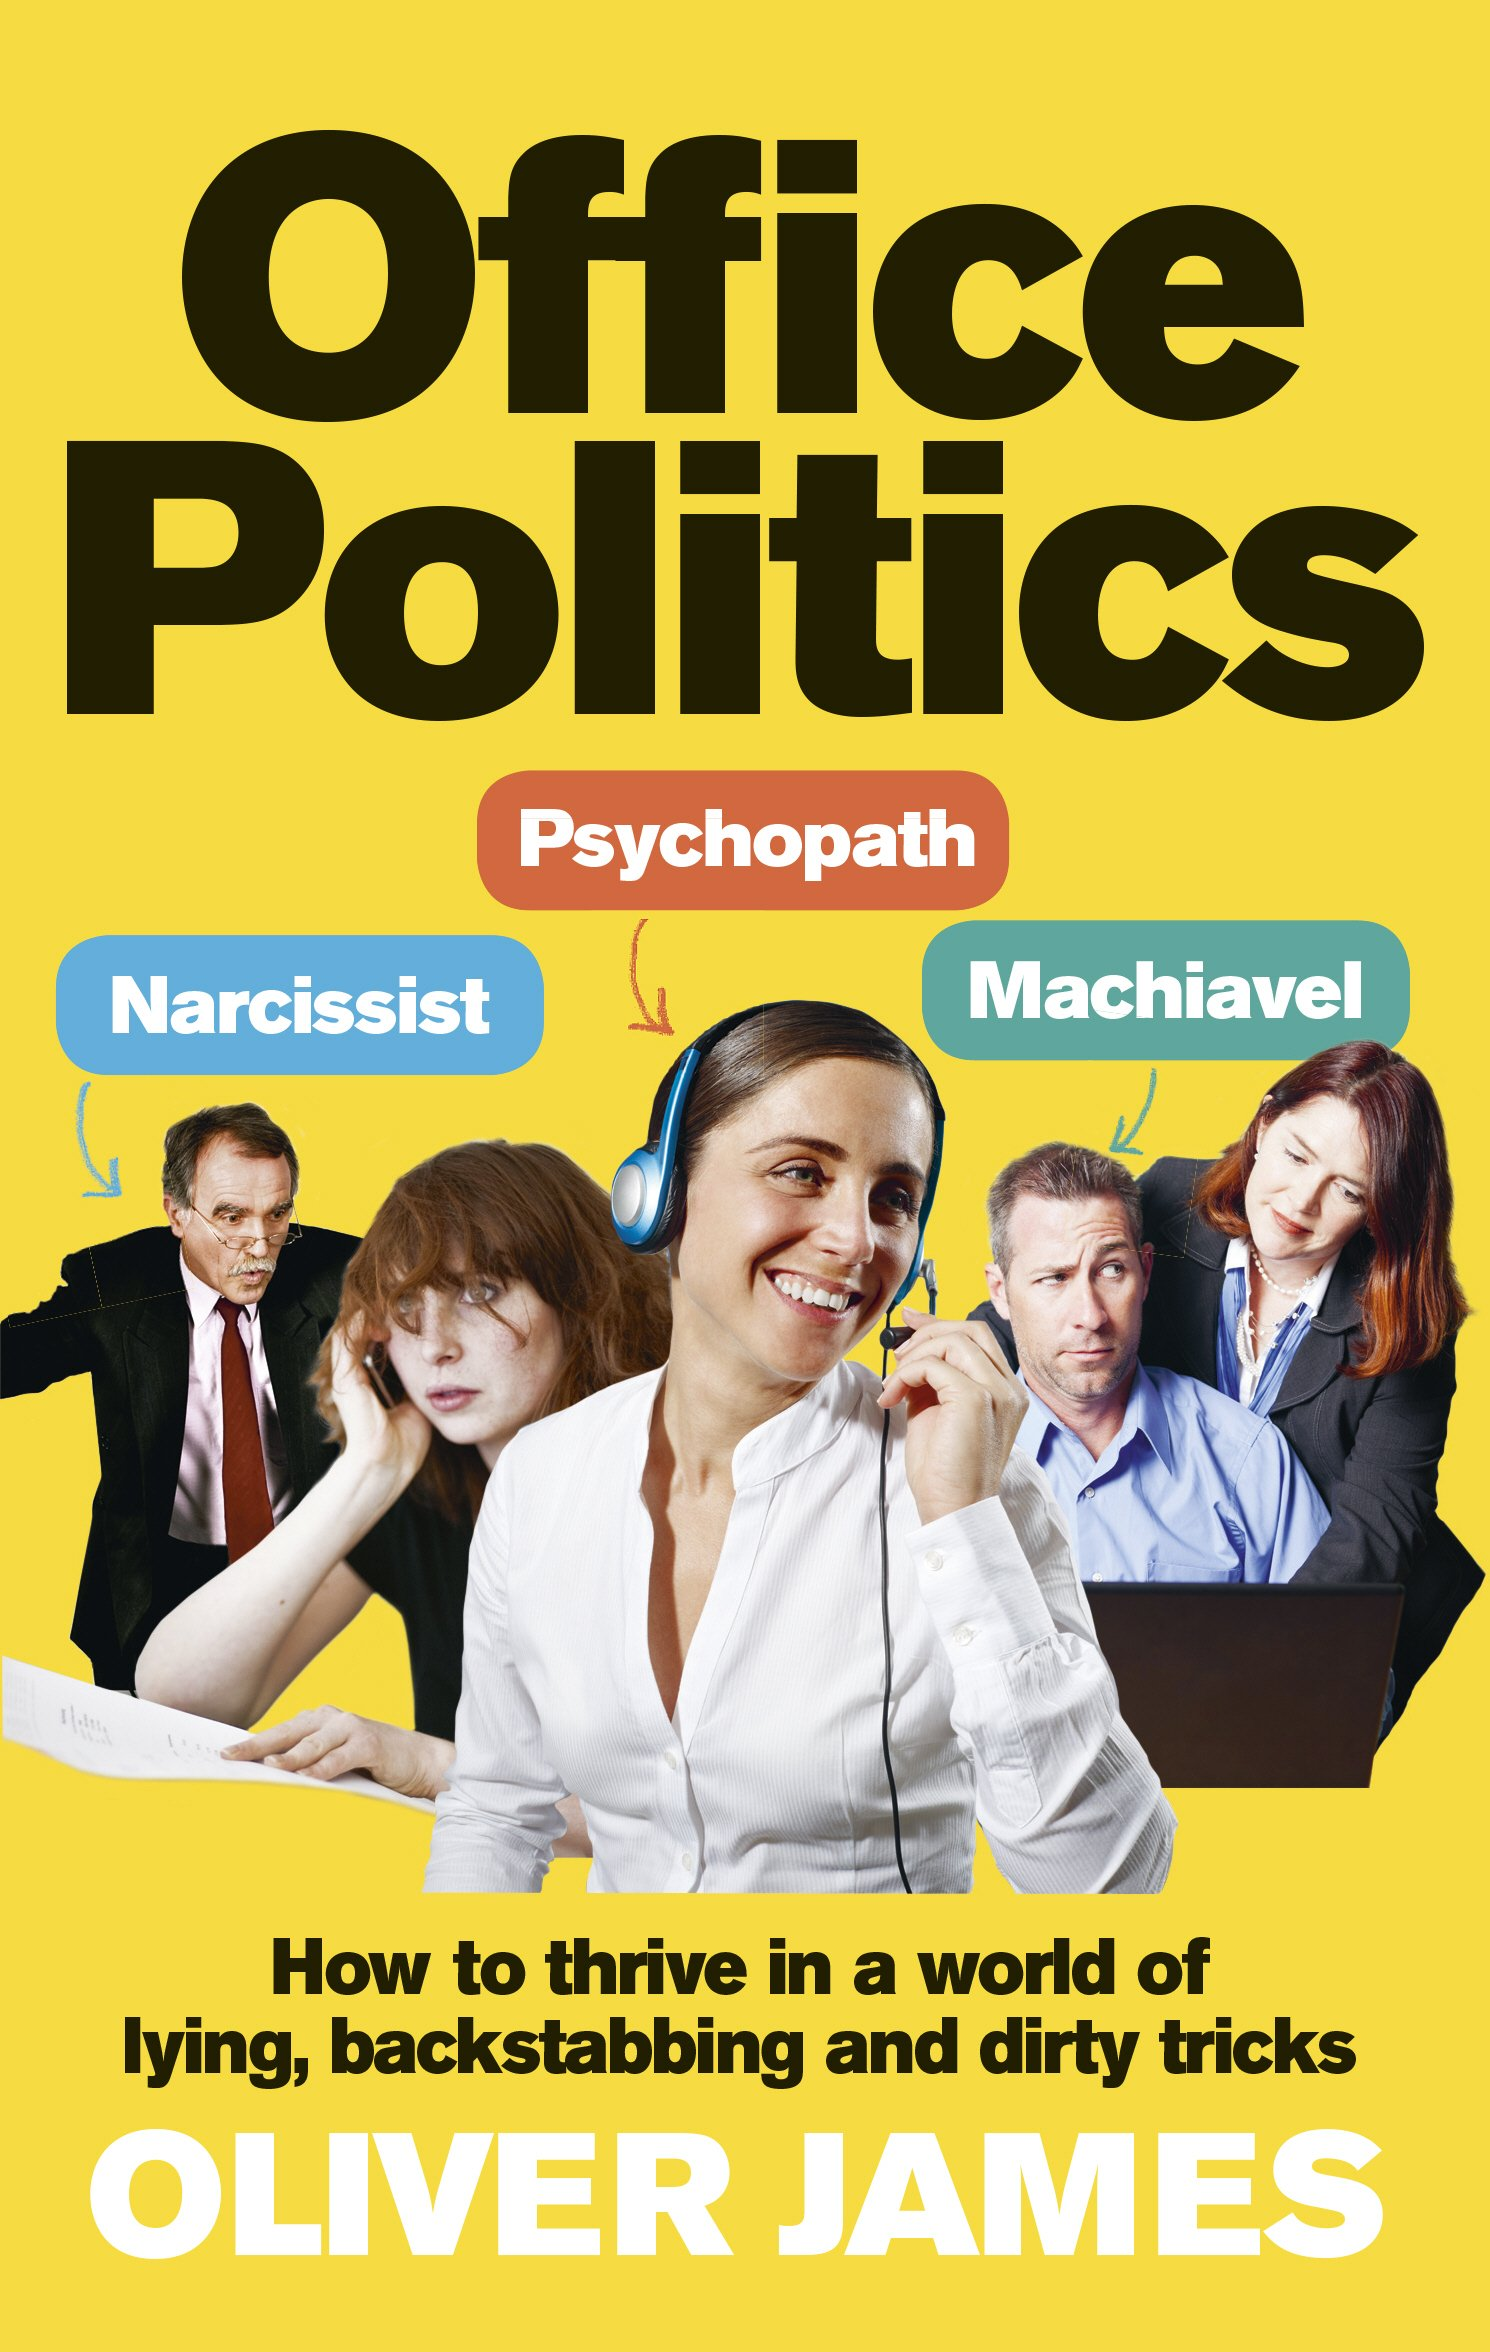 office politics how to thrive in a world of lying backstabbing office politics how to thrive in a world of lying backstabbing and dirty tricks amazon co uk oliver james 8601404691720 books